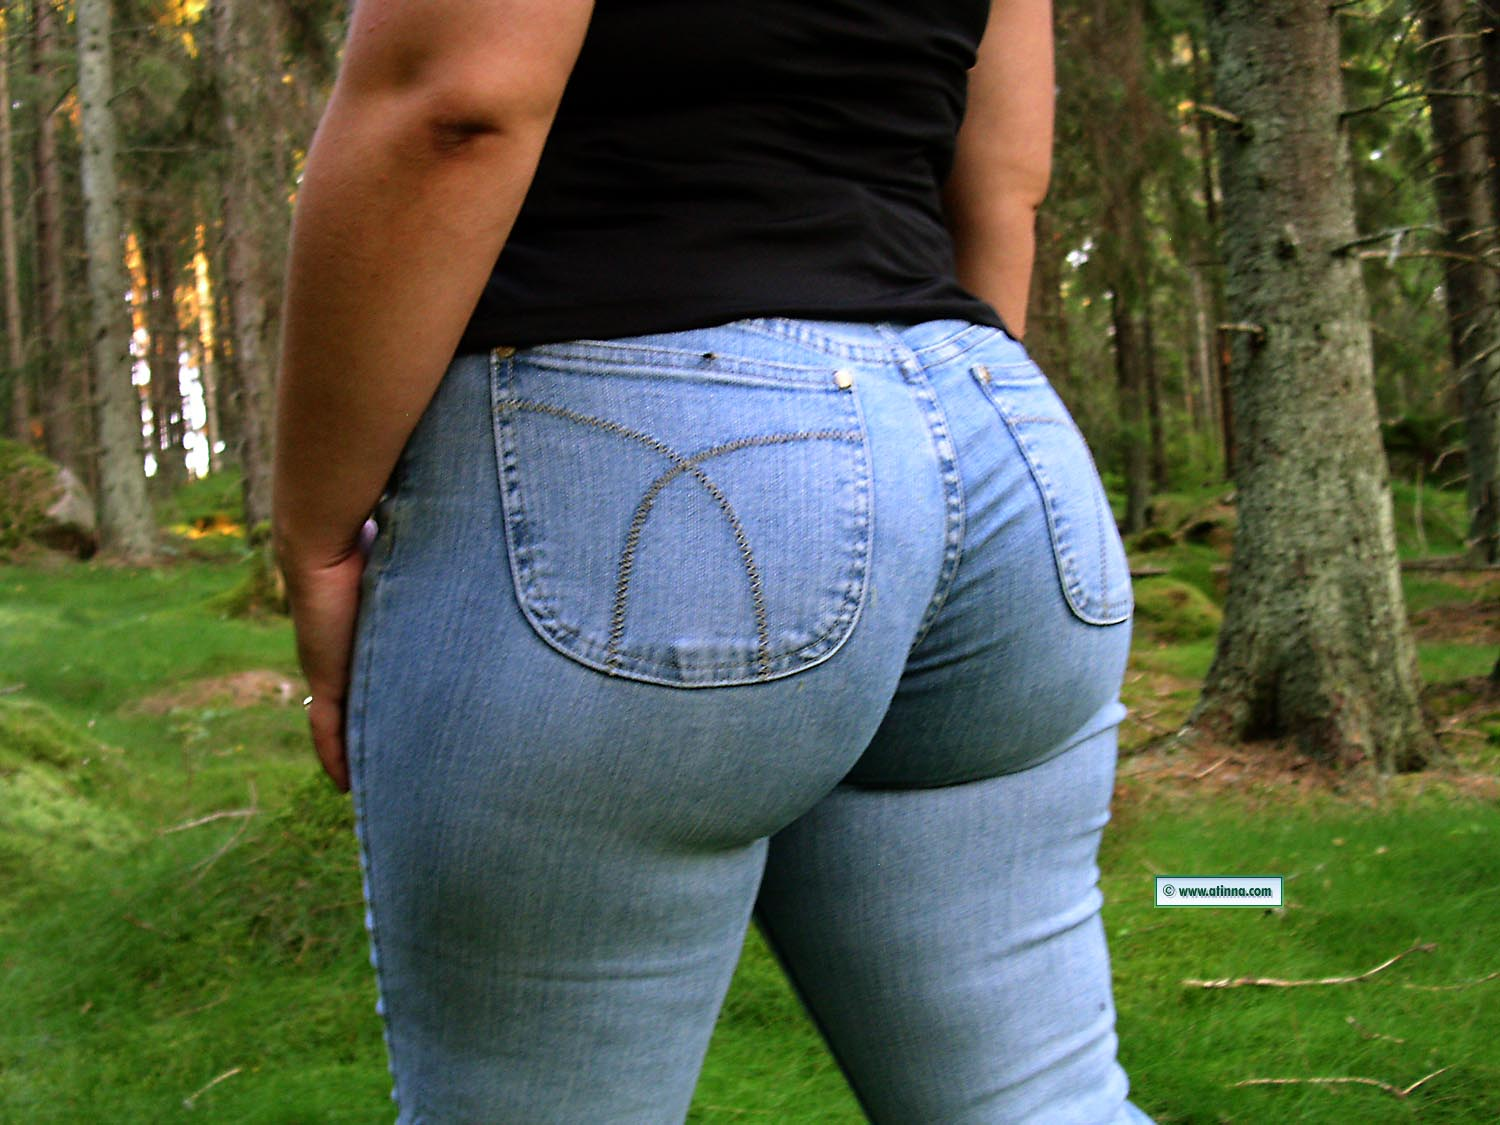 Do Moms With Bigger Butts Have More Intelligent Kids